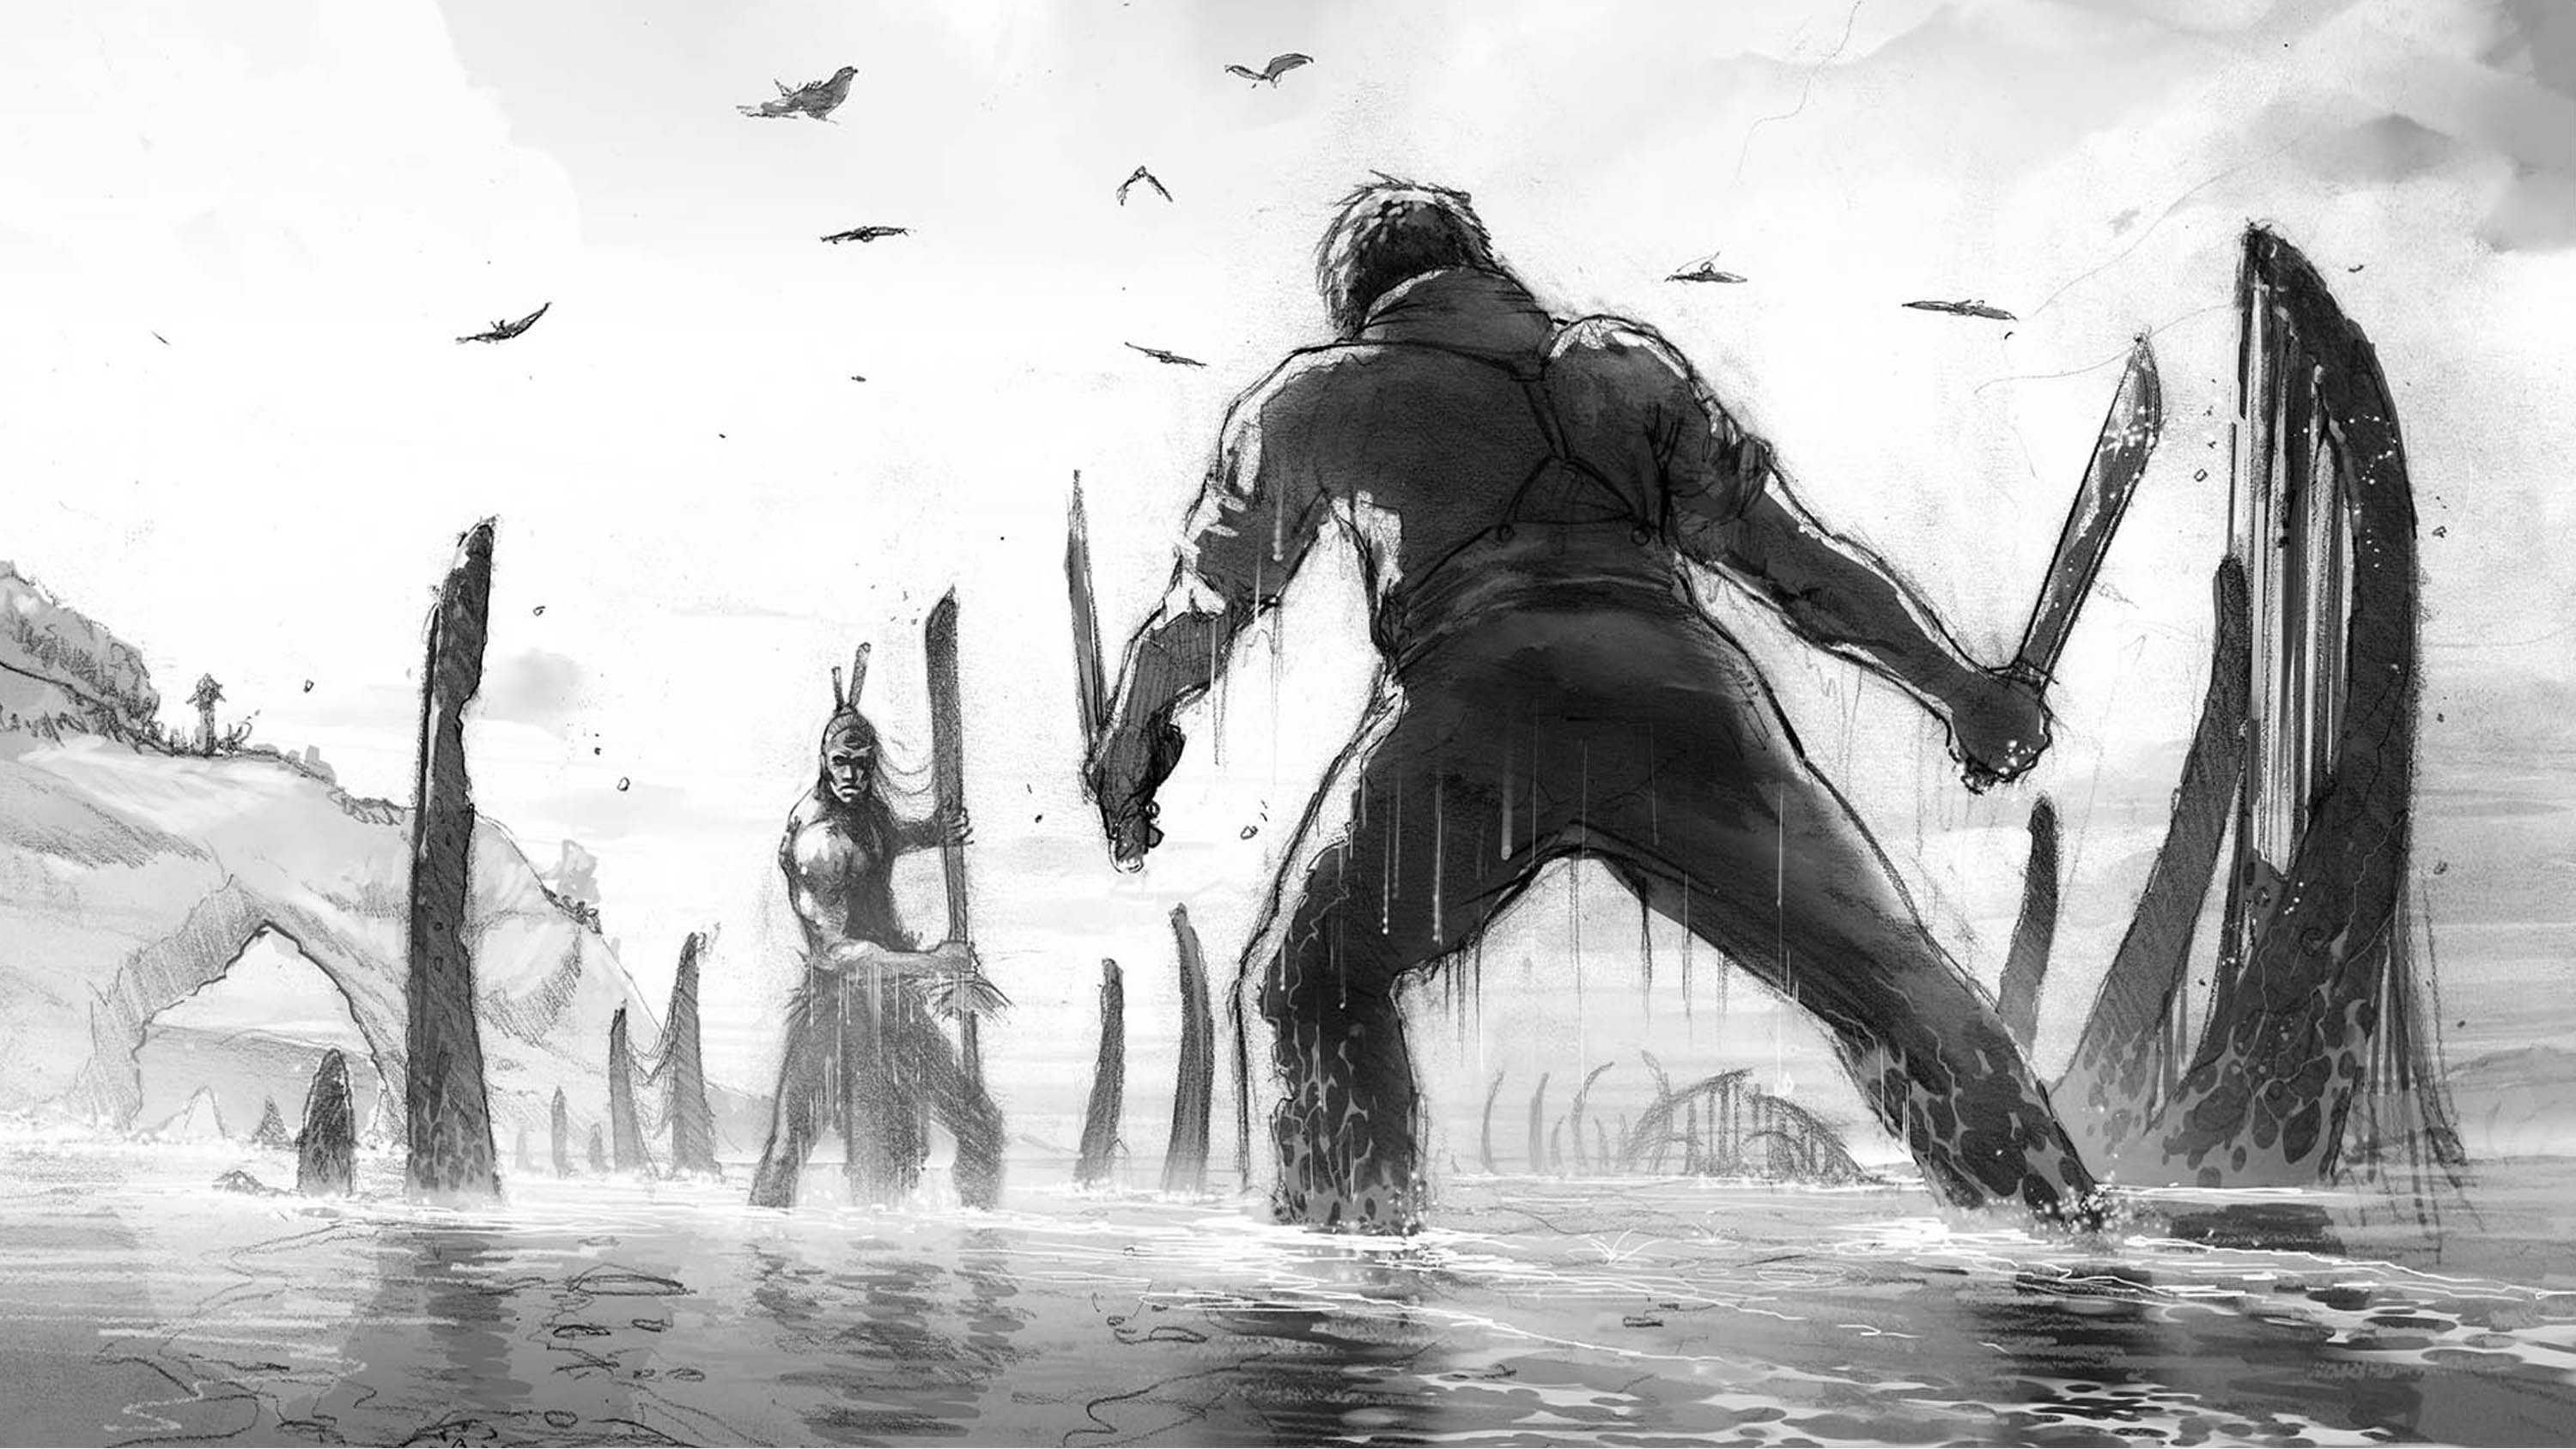 Heavy rendered sketch with ques for depth and tone. Darker Values at the FG